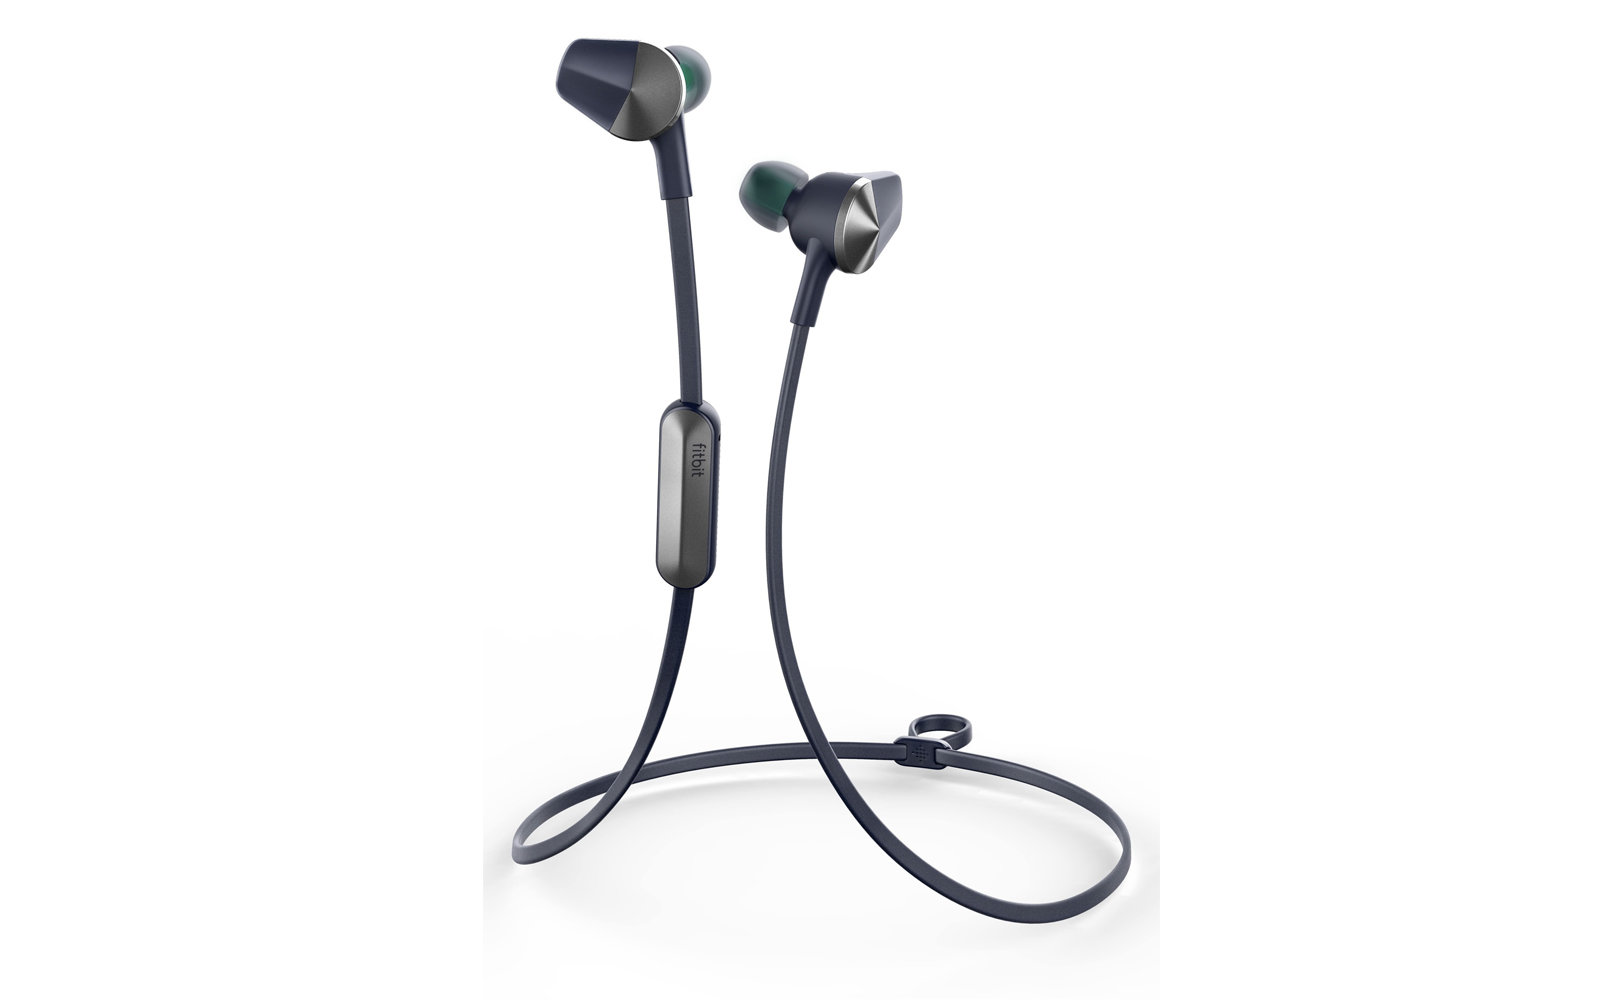 Fitbit Flyer Wireless Earbuds